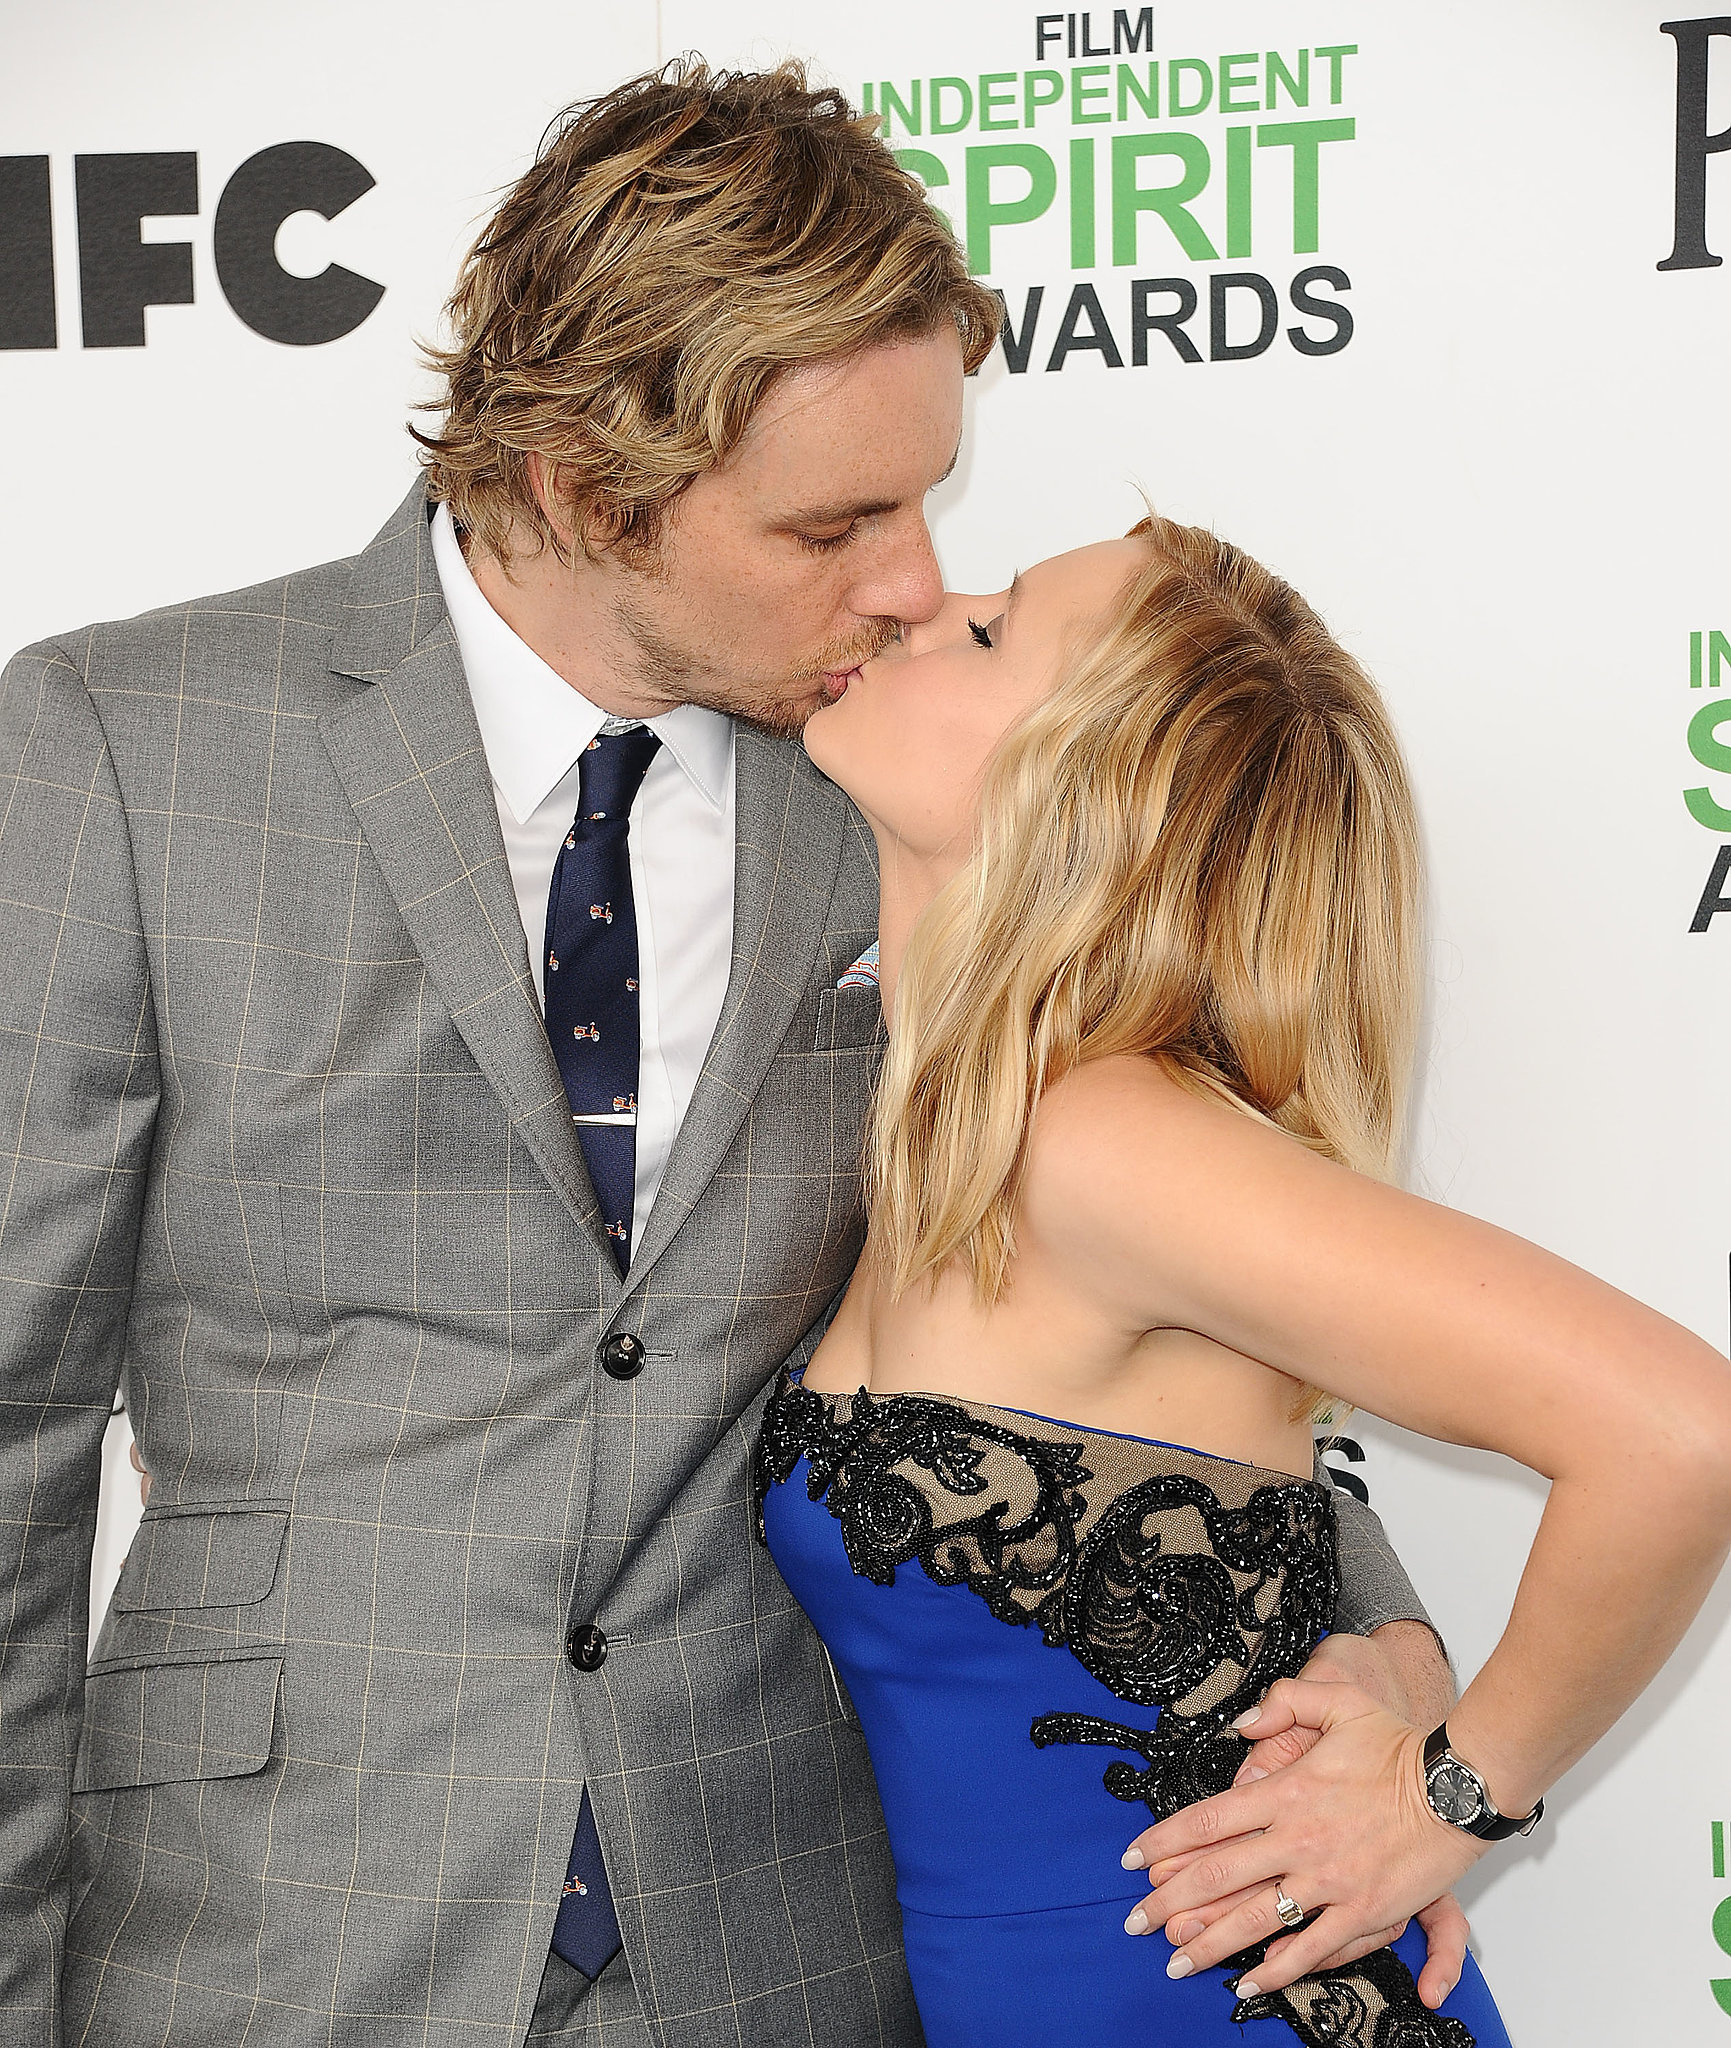 Dax Shepard and Kristen Bell shared a kiss on the red carpet at the Spirit Awards.